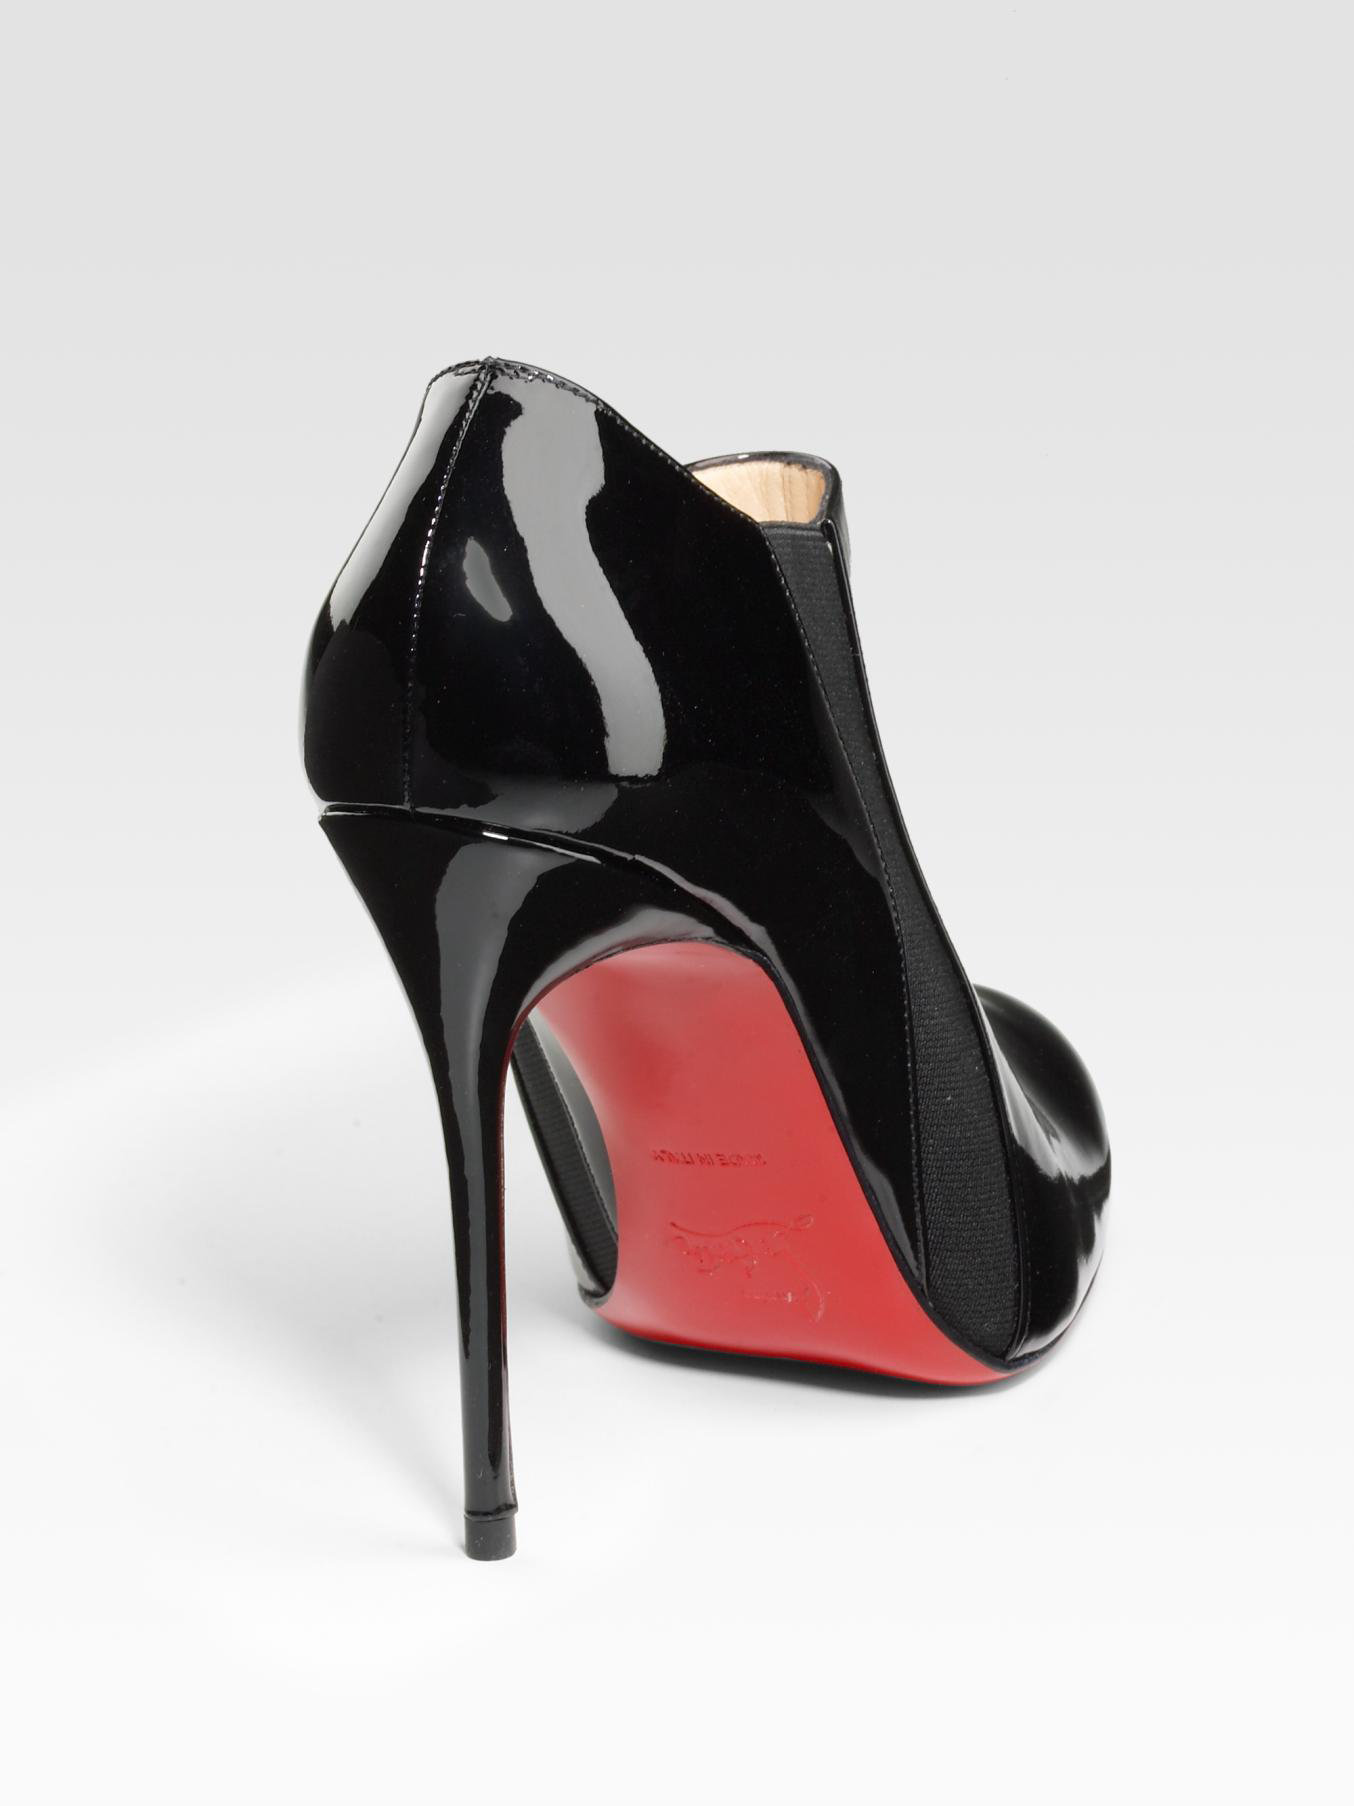 louboutin replica shoes - Peony Design ? christian louboutin black patent ankle boots